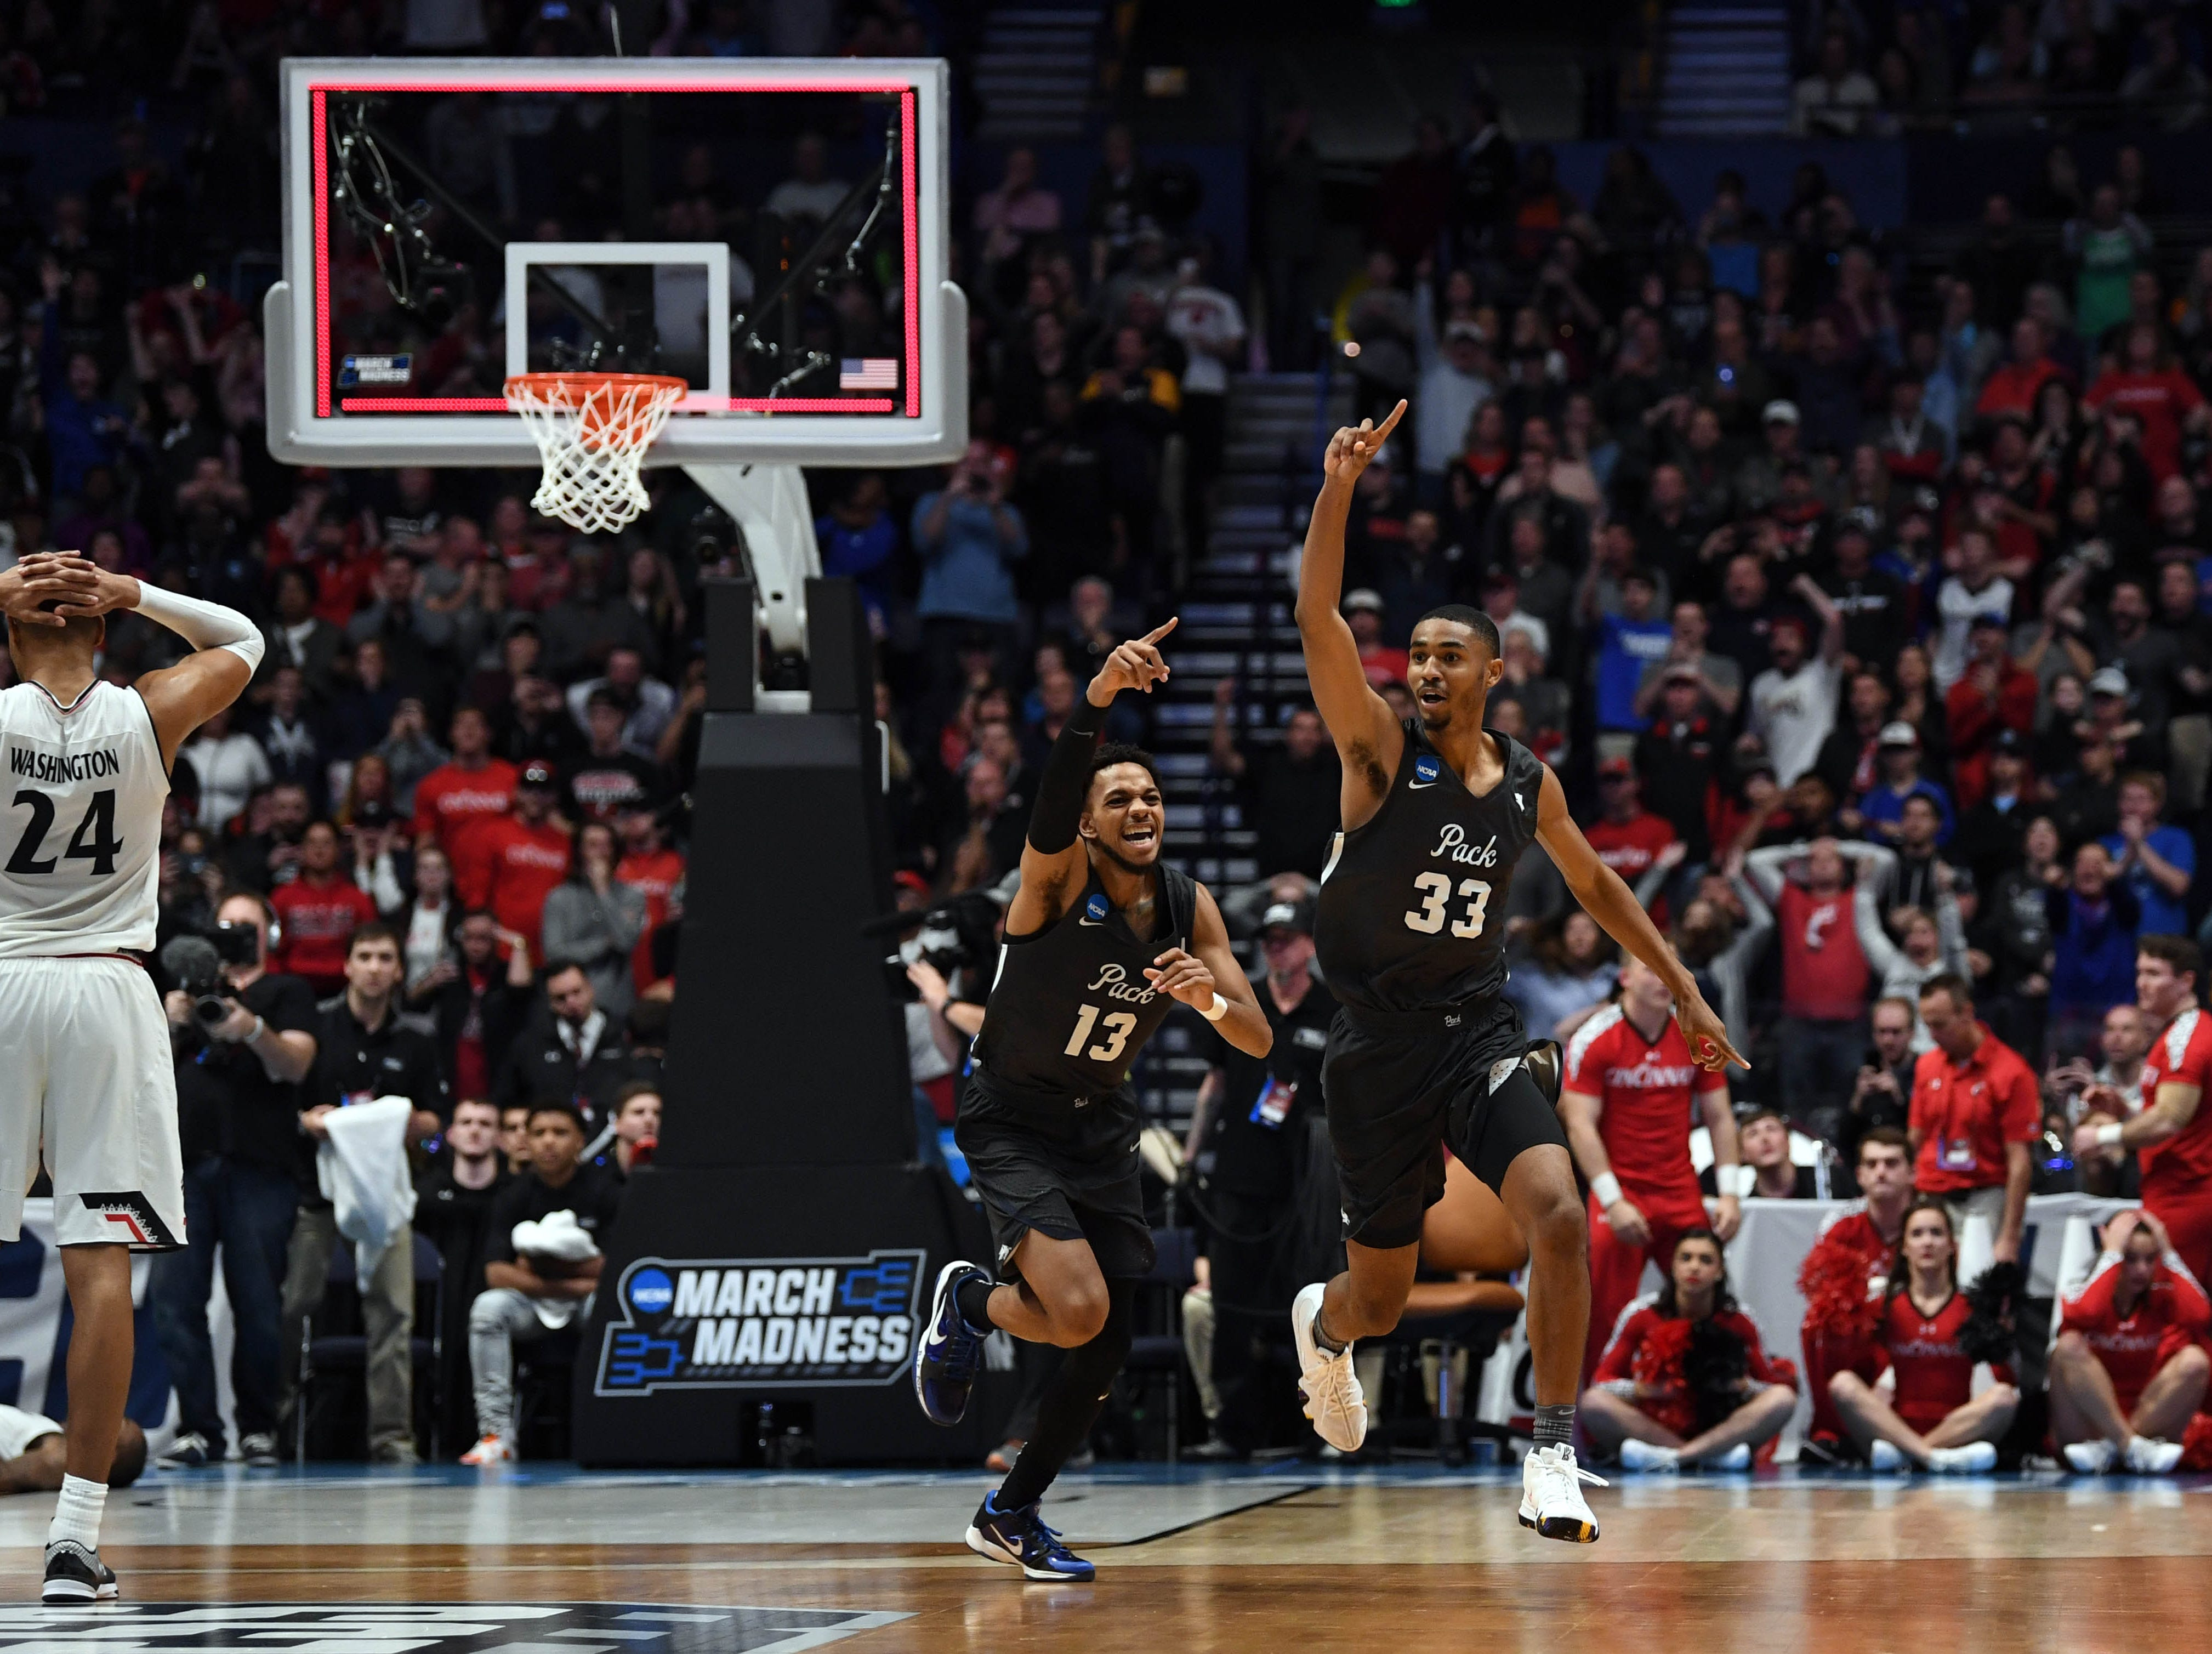 March 18: Nevada Wolf Pack guard Josh Hall (33) reacts after defeating the Cincinnati Bearcats via a big comeback in the second round of the NCAA tournament.